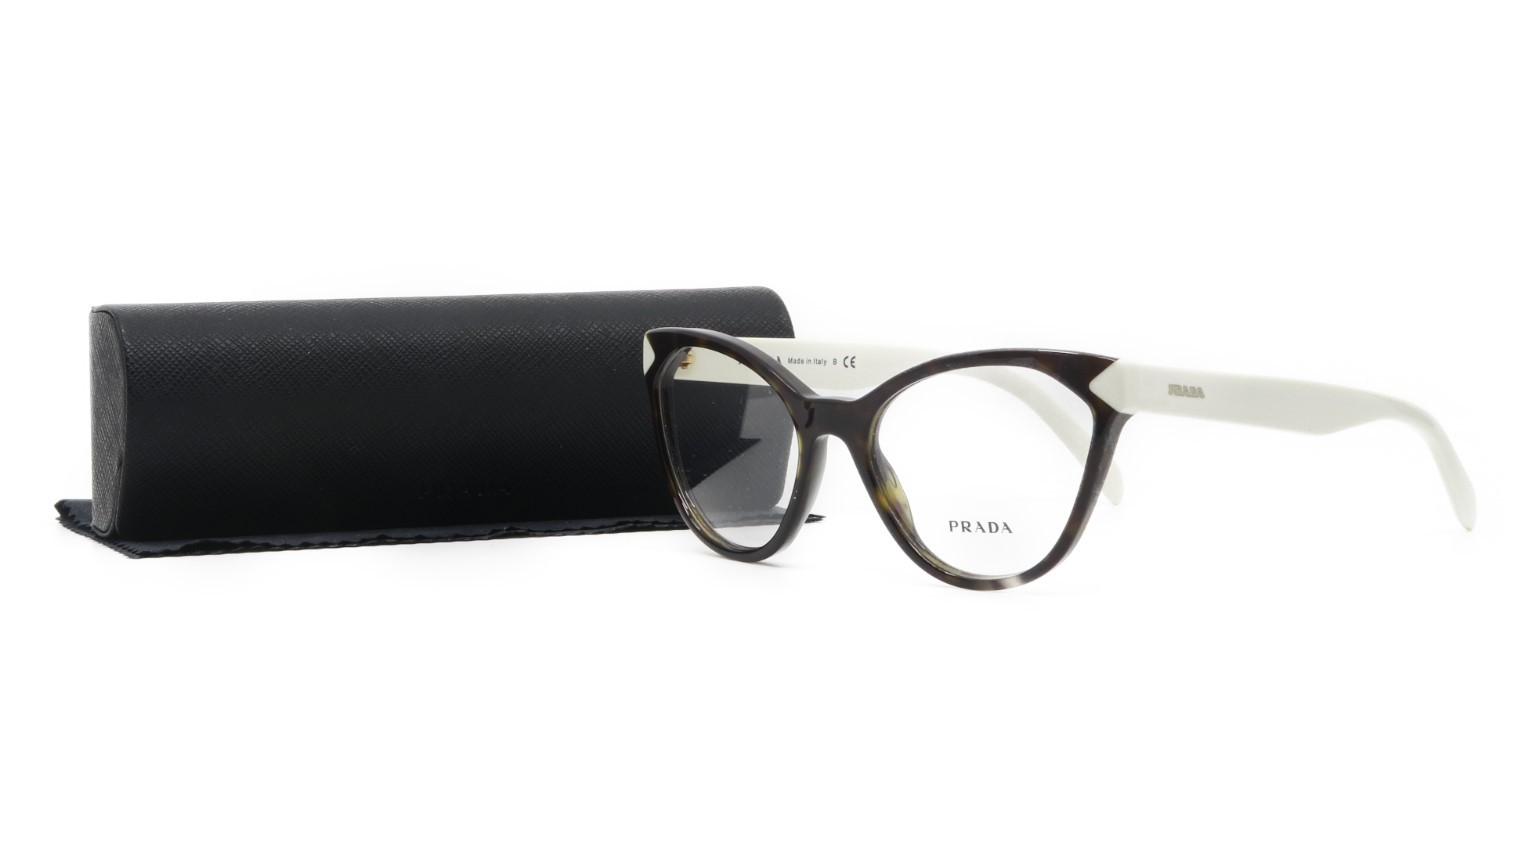 PRADA Women's Tortoise White Glasses with case VPR 02T-F 2AU-1O1 54mm